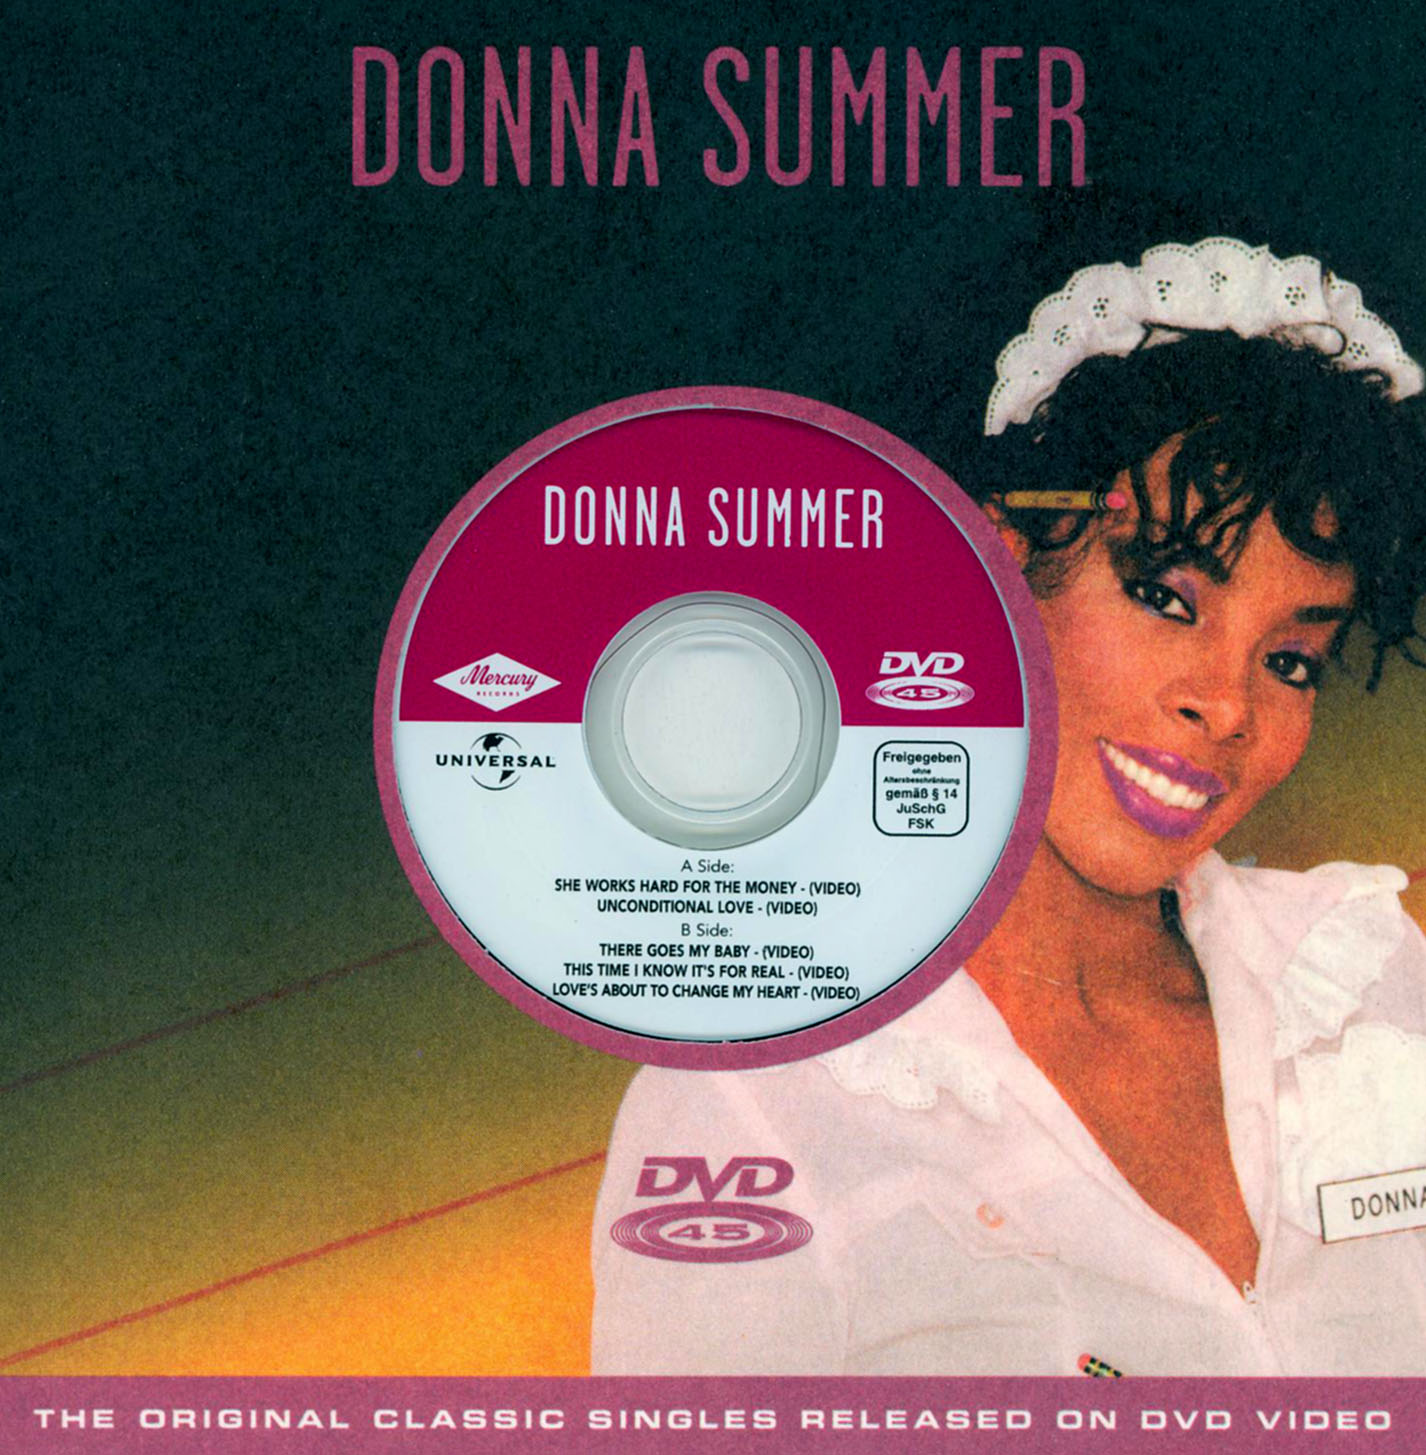 Donna Summer: She Works Hard for the Money